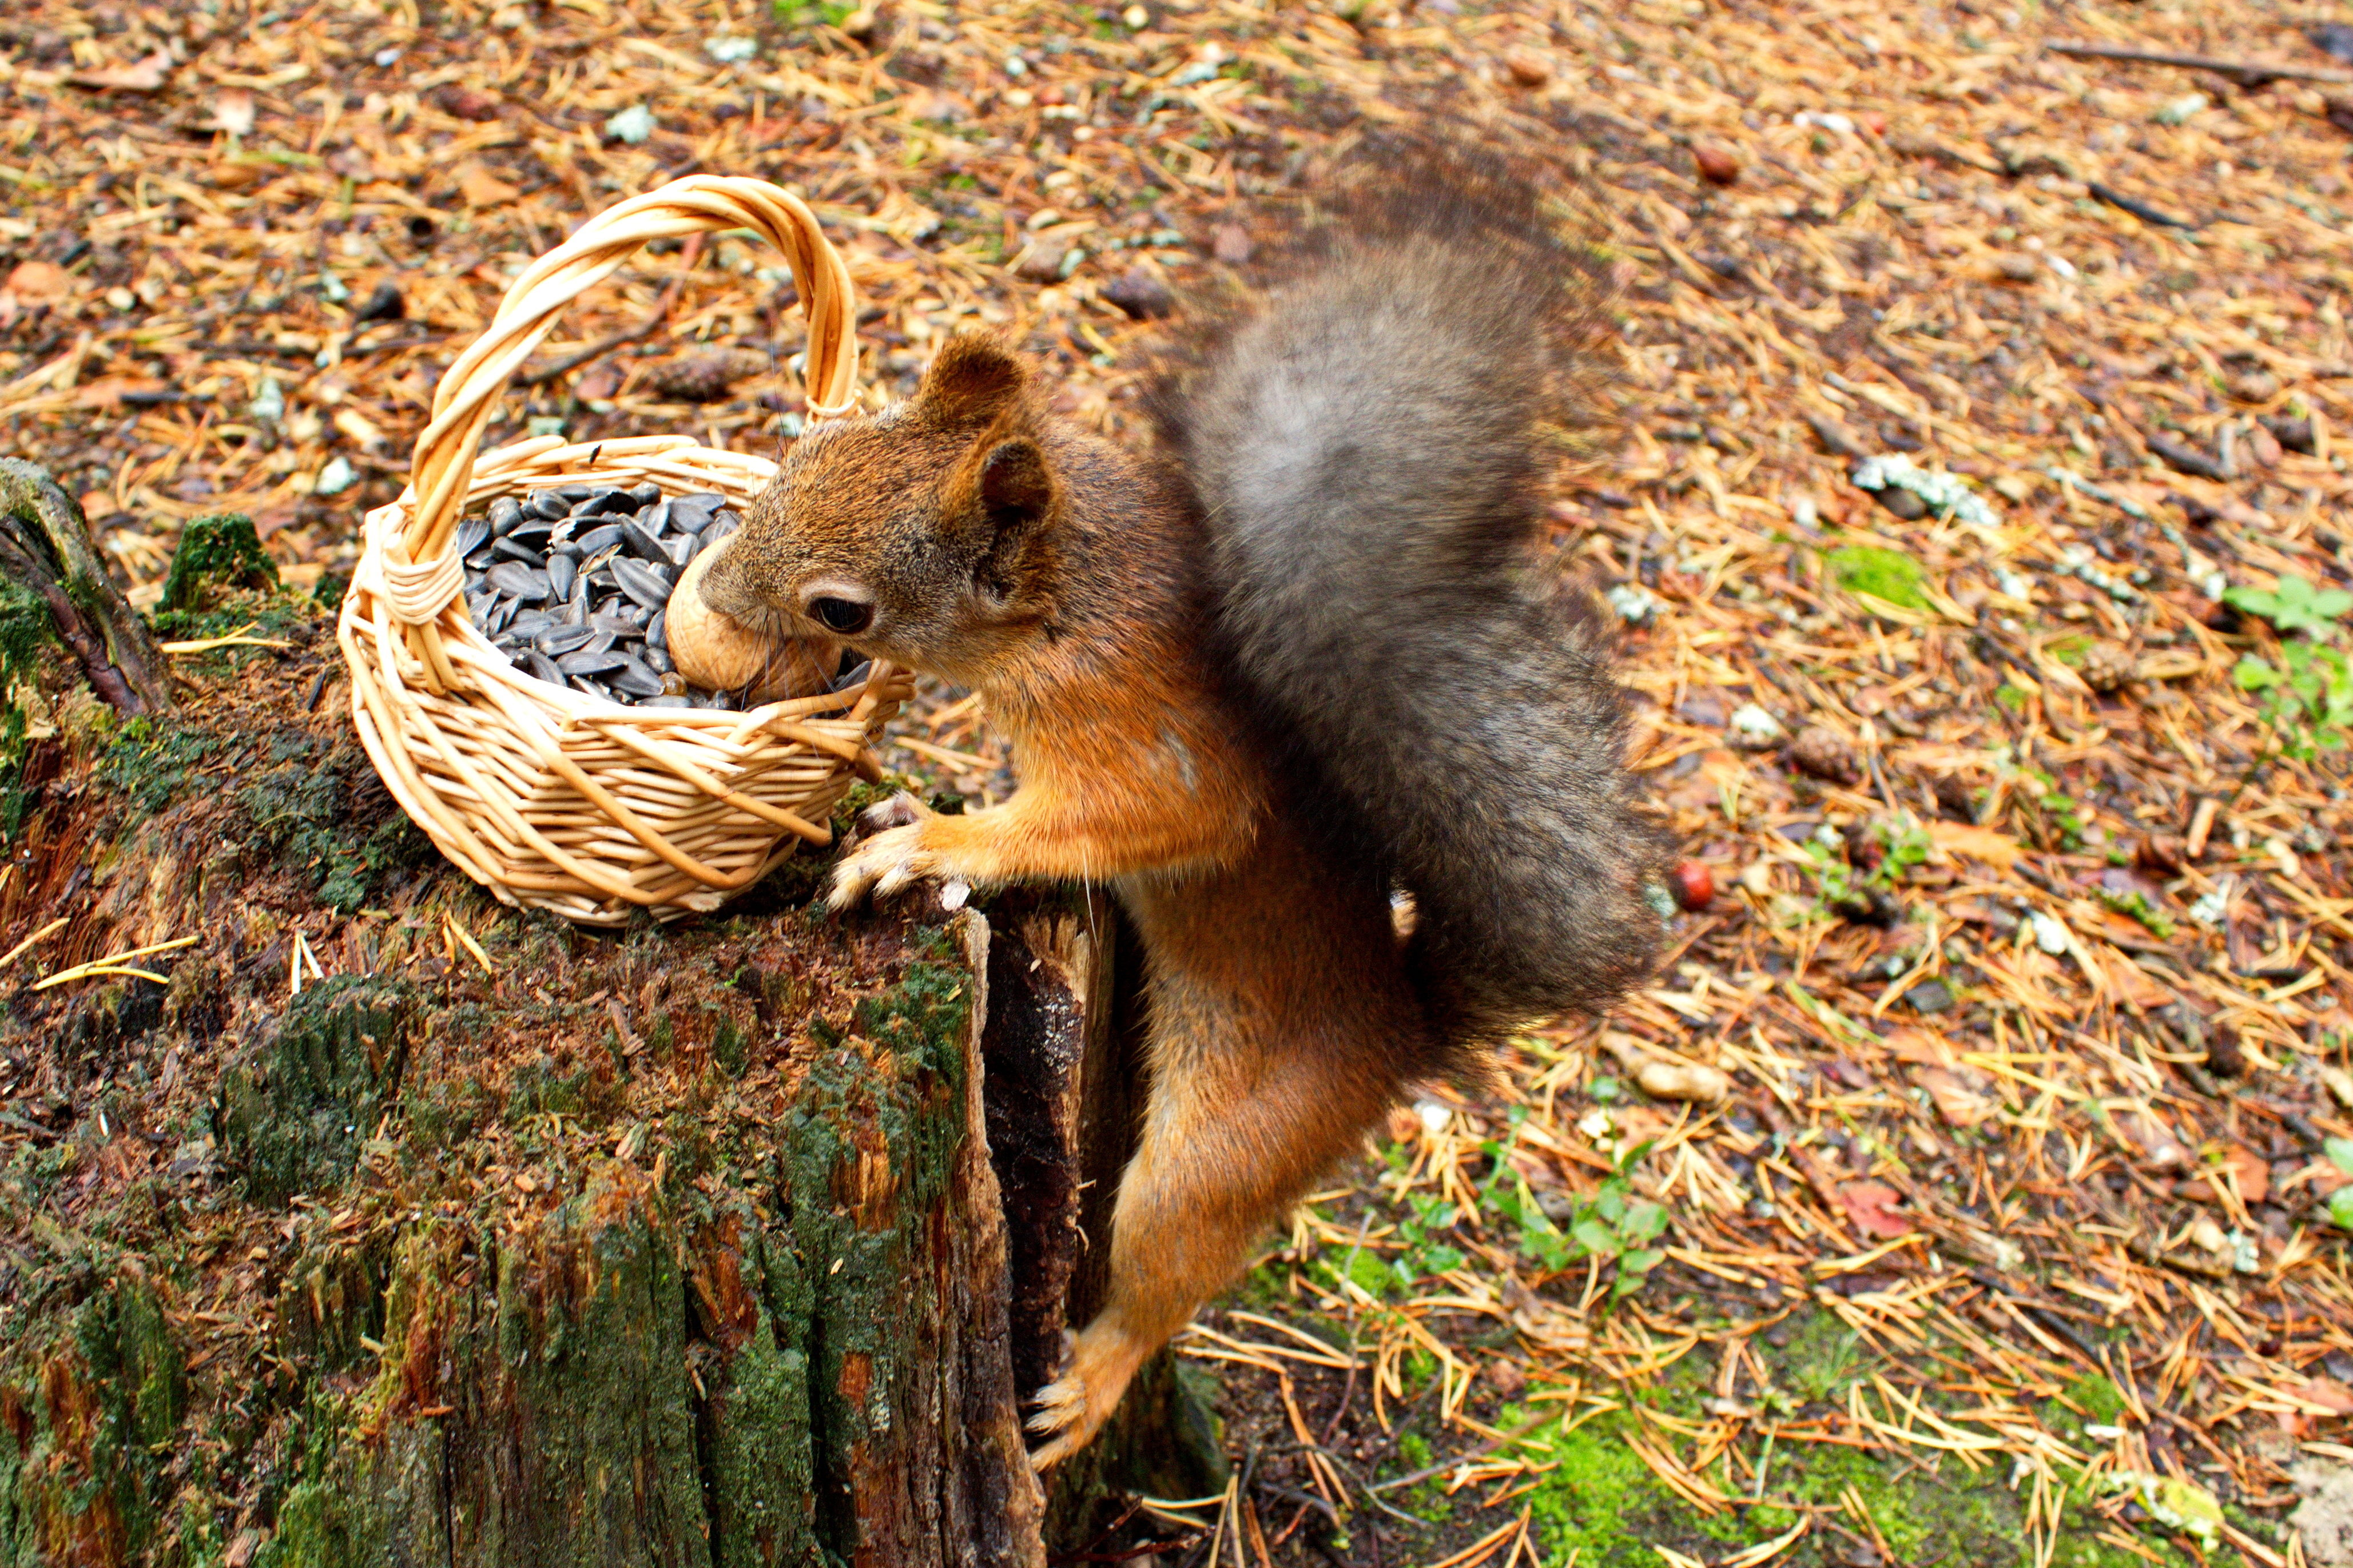 102920 download wallpaper Animals, Squirrel, Food, Basket, Stump, Penek, Seeds, Sunflower Seeds screensavers and pictures for free